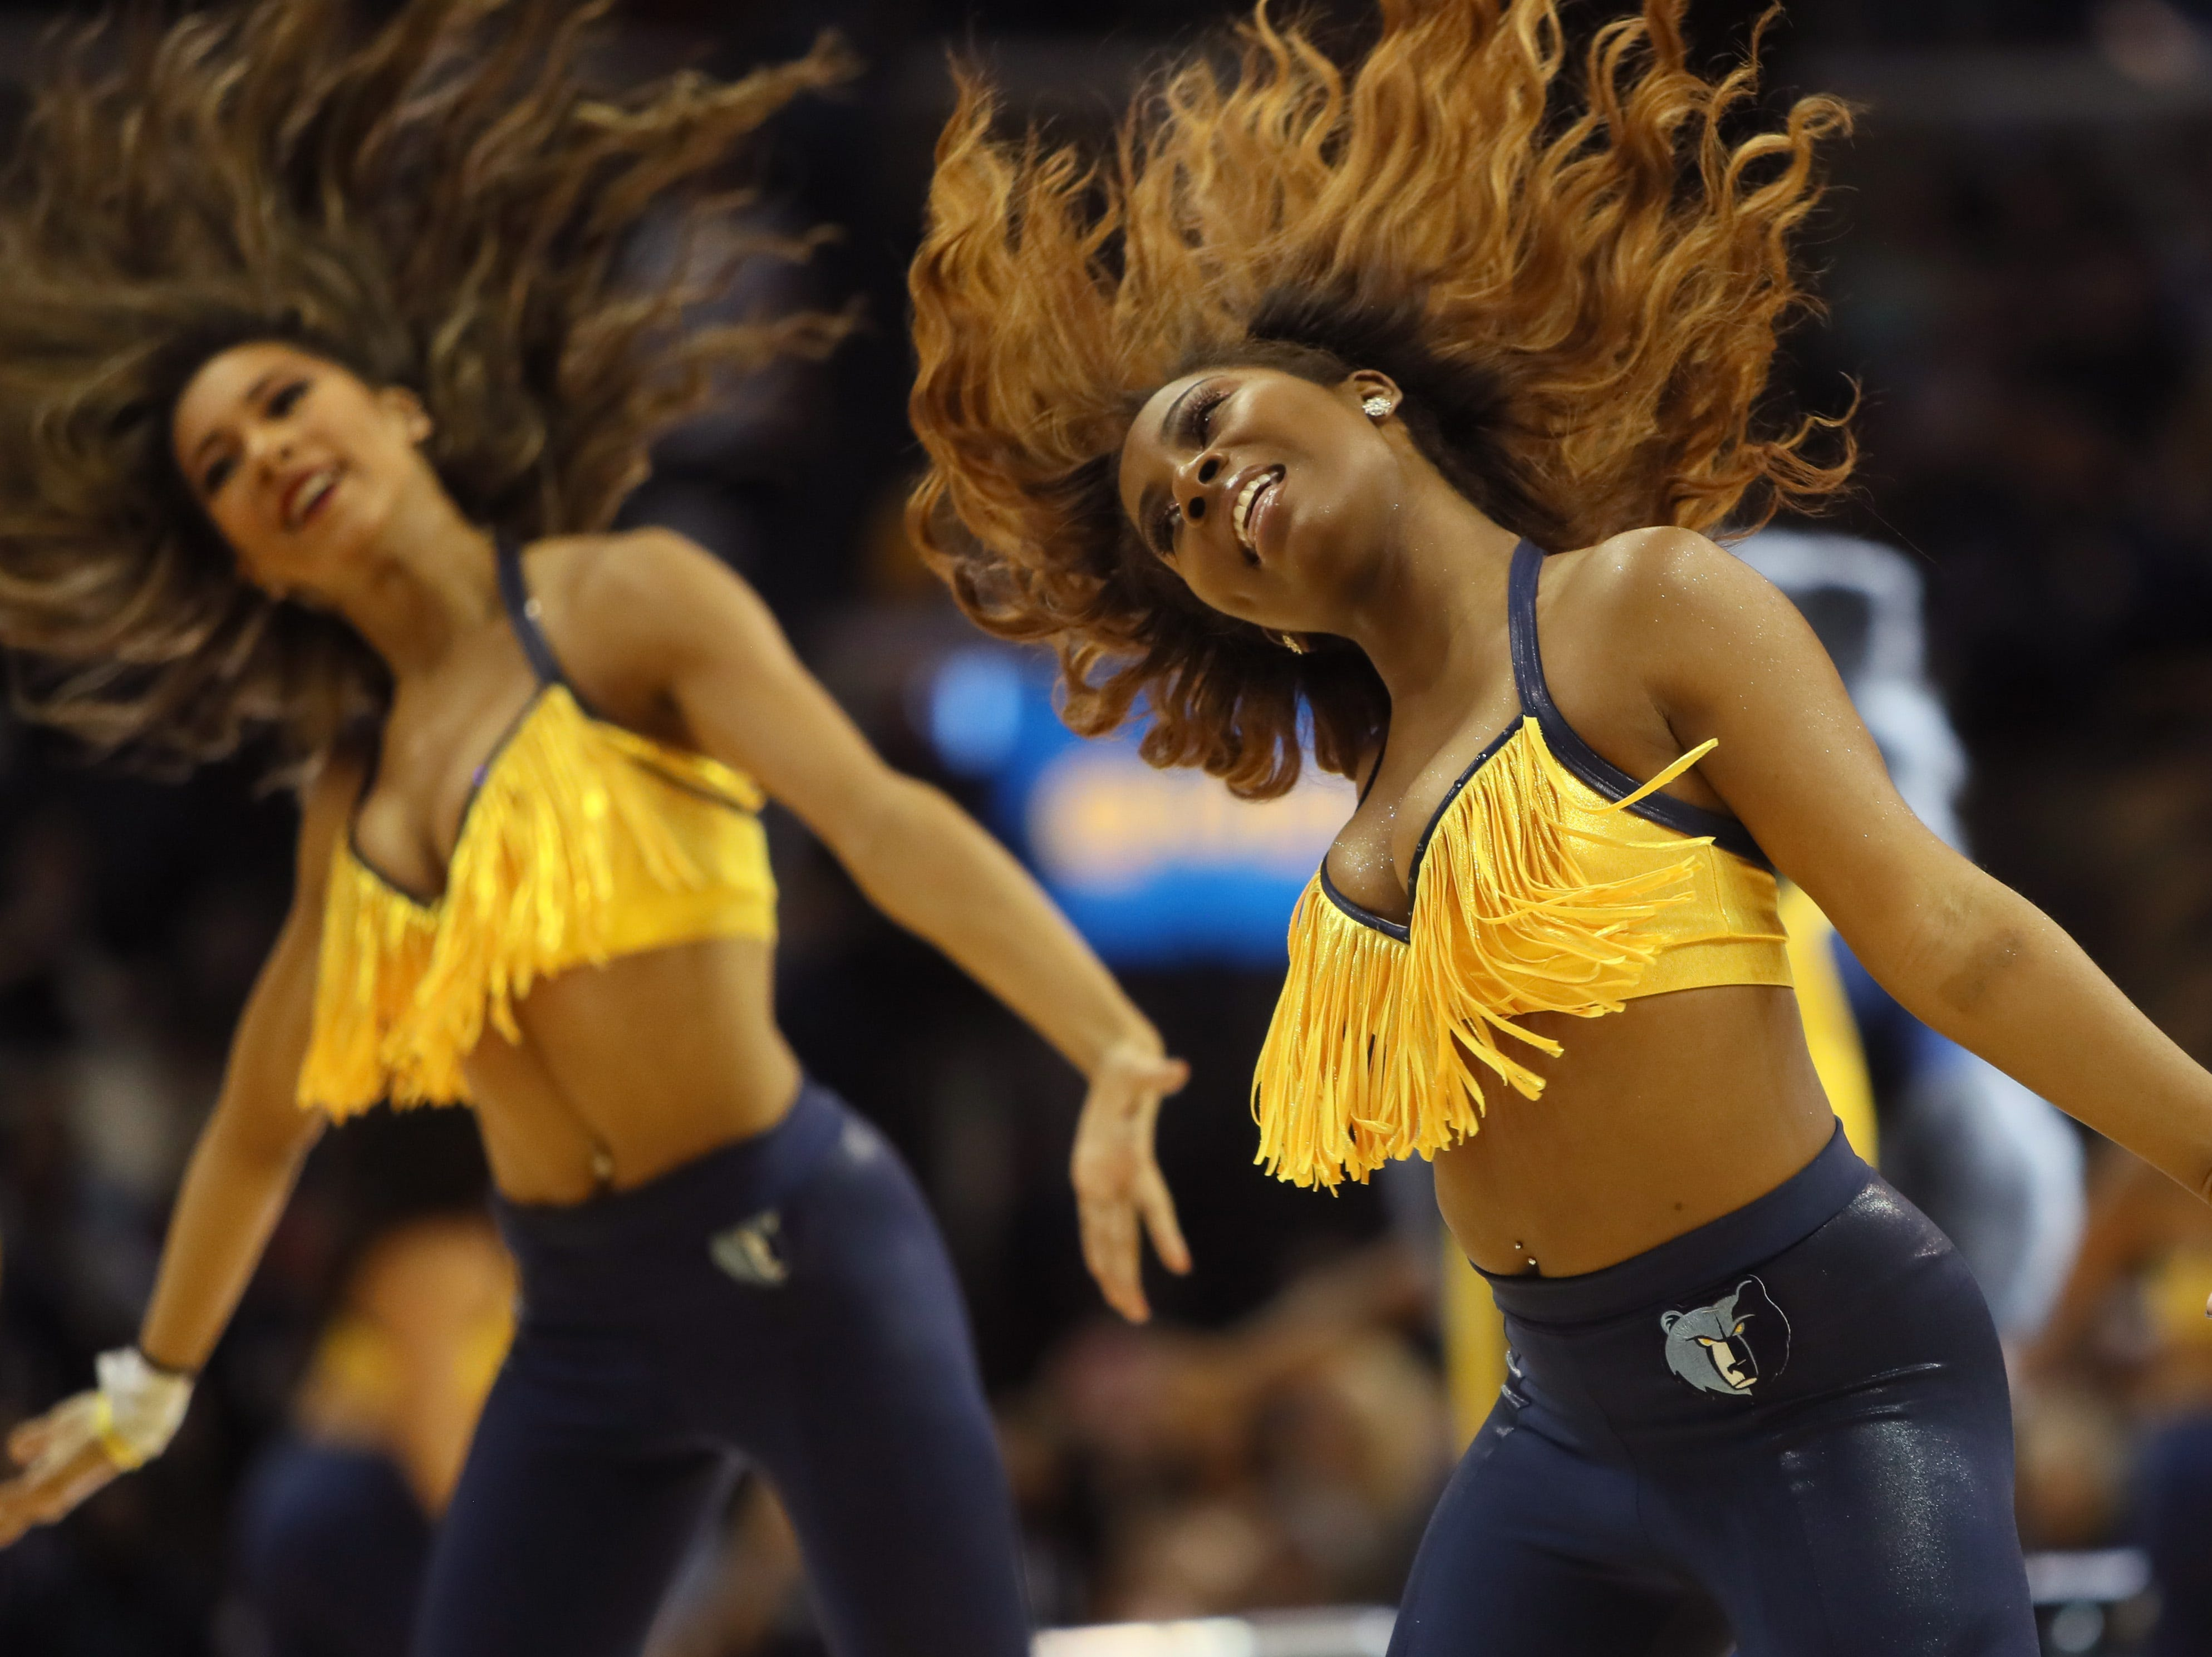 The Grizz Girls perform during the Memphis Grizzlies game against the Denver Nuggets at the FedExForum on Wednesday, November 7, 2018.